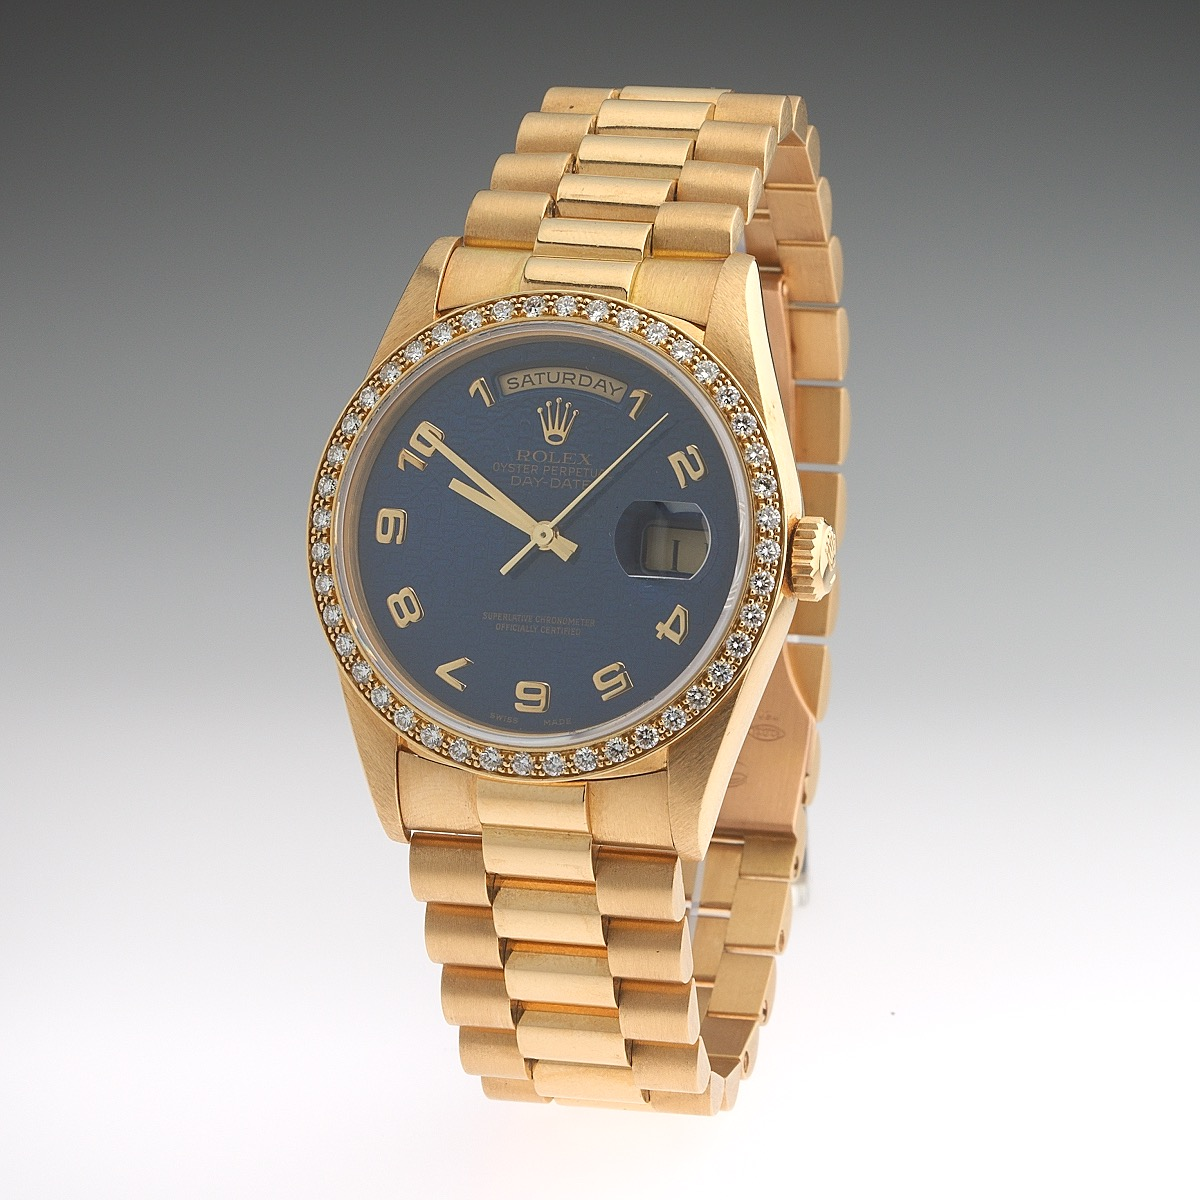 Rolex Gold And Diamond Oyster Perpetual Day Date Watch